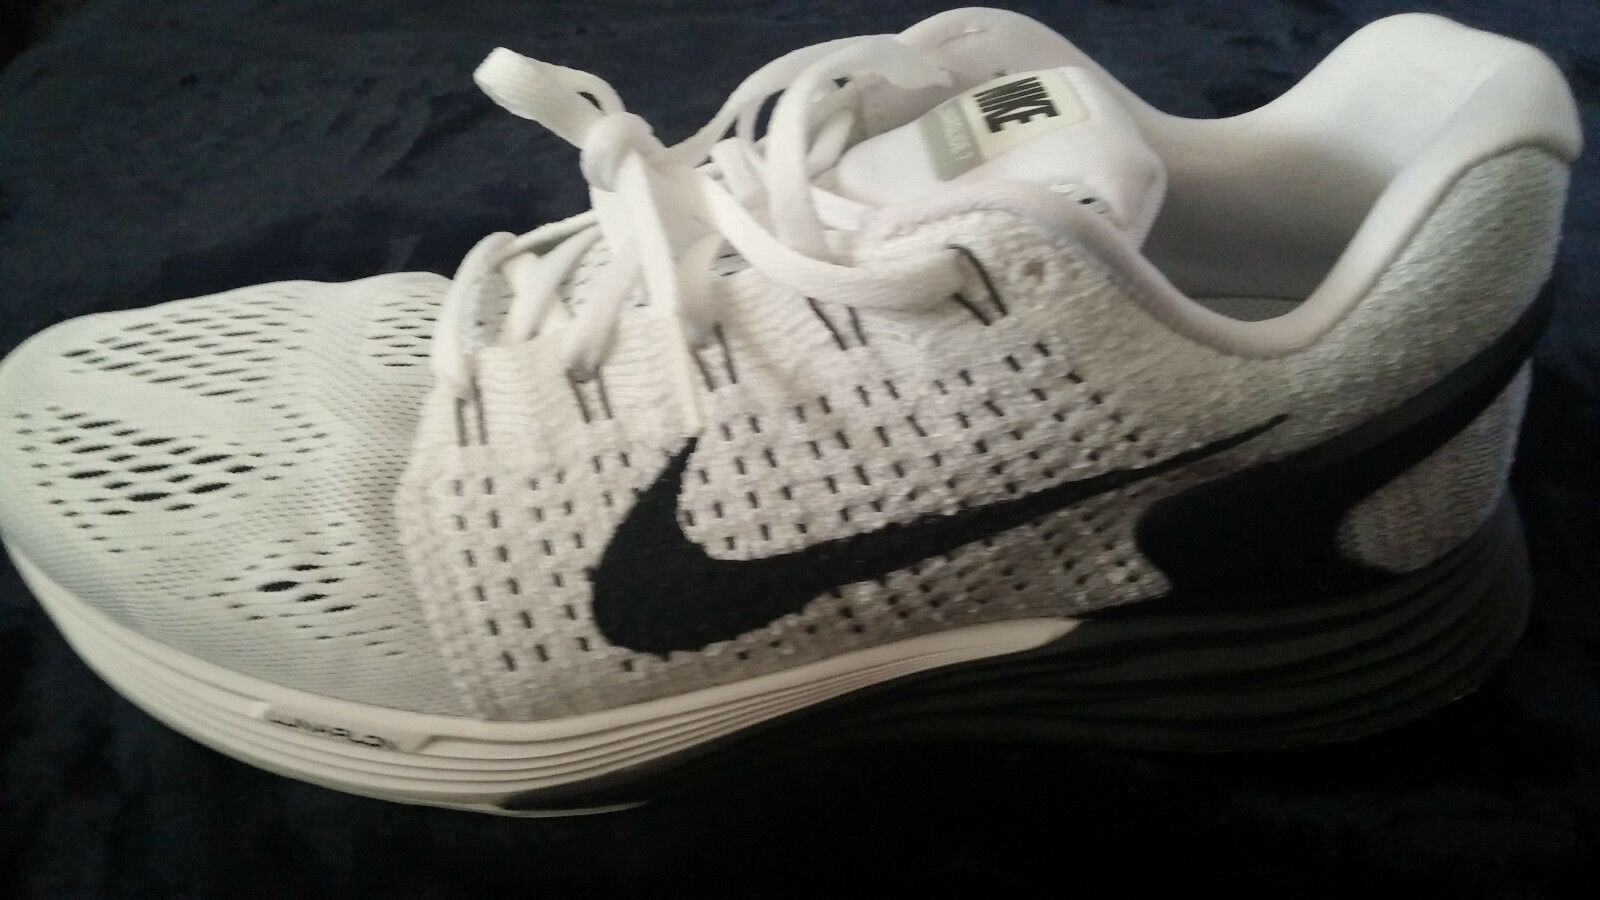 NIKE Lunarglide  Mens Running shoes  White   Black Size  8.5